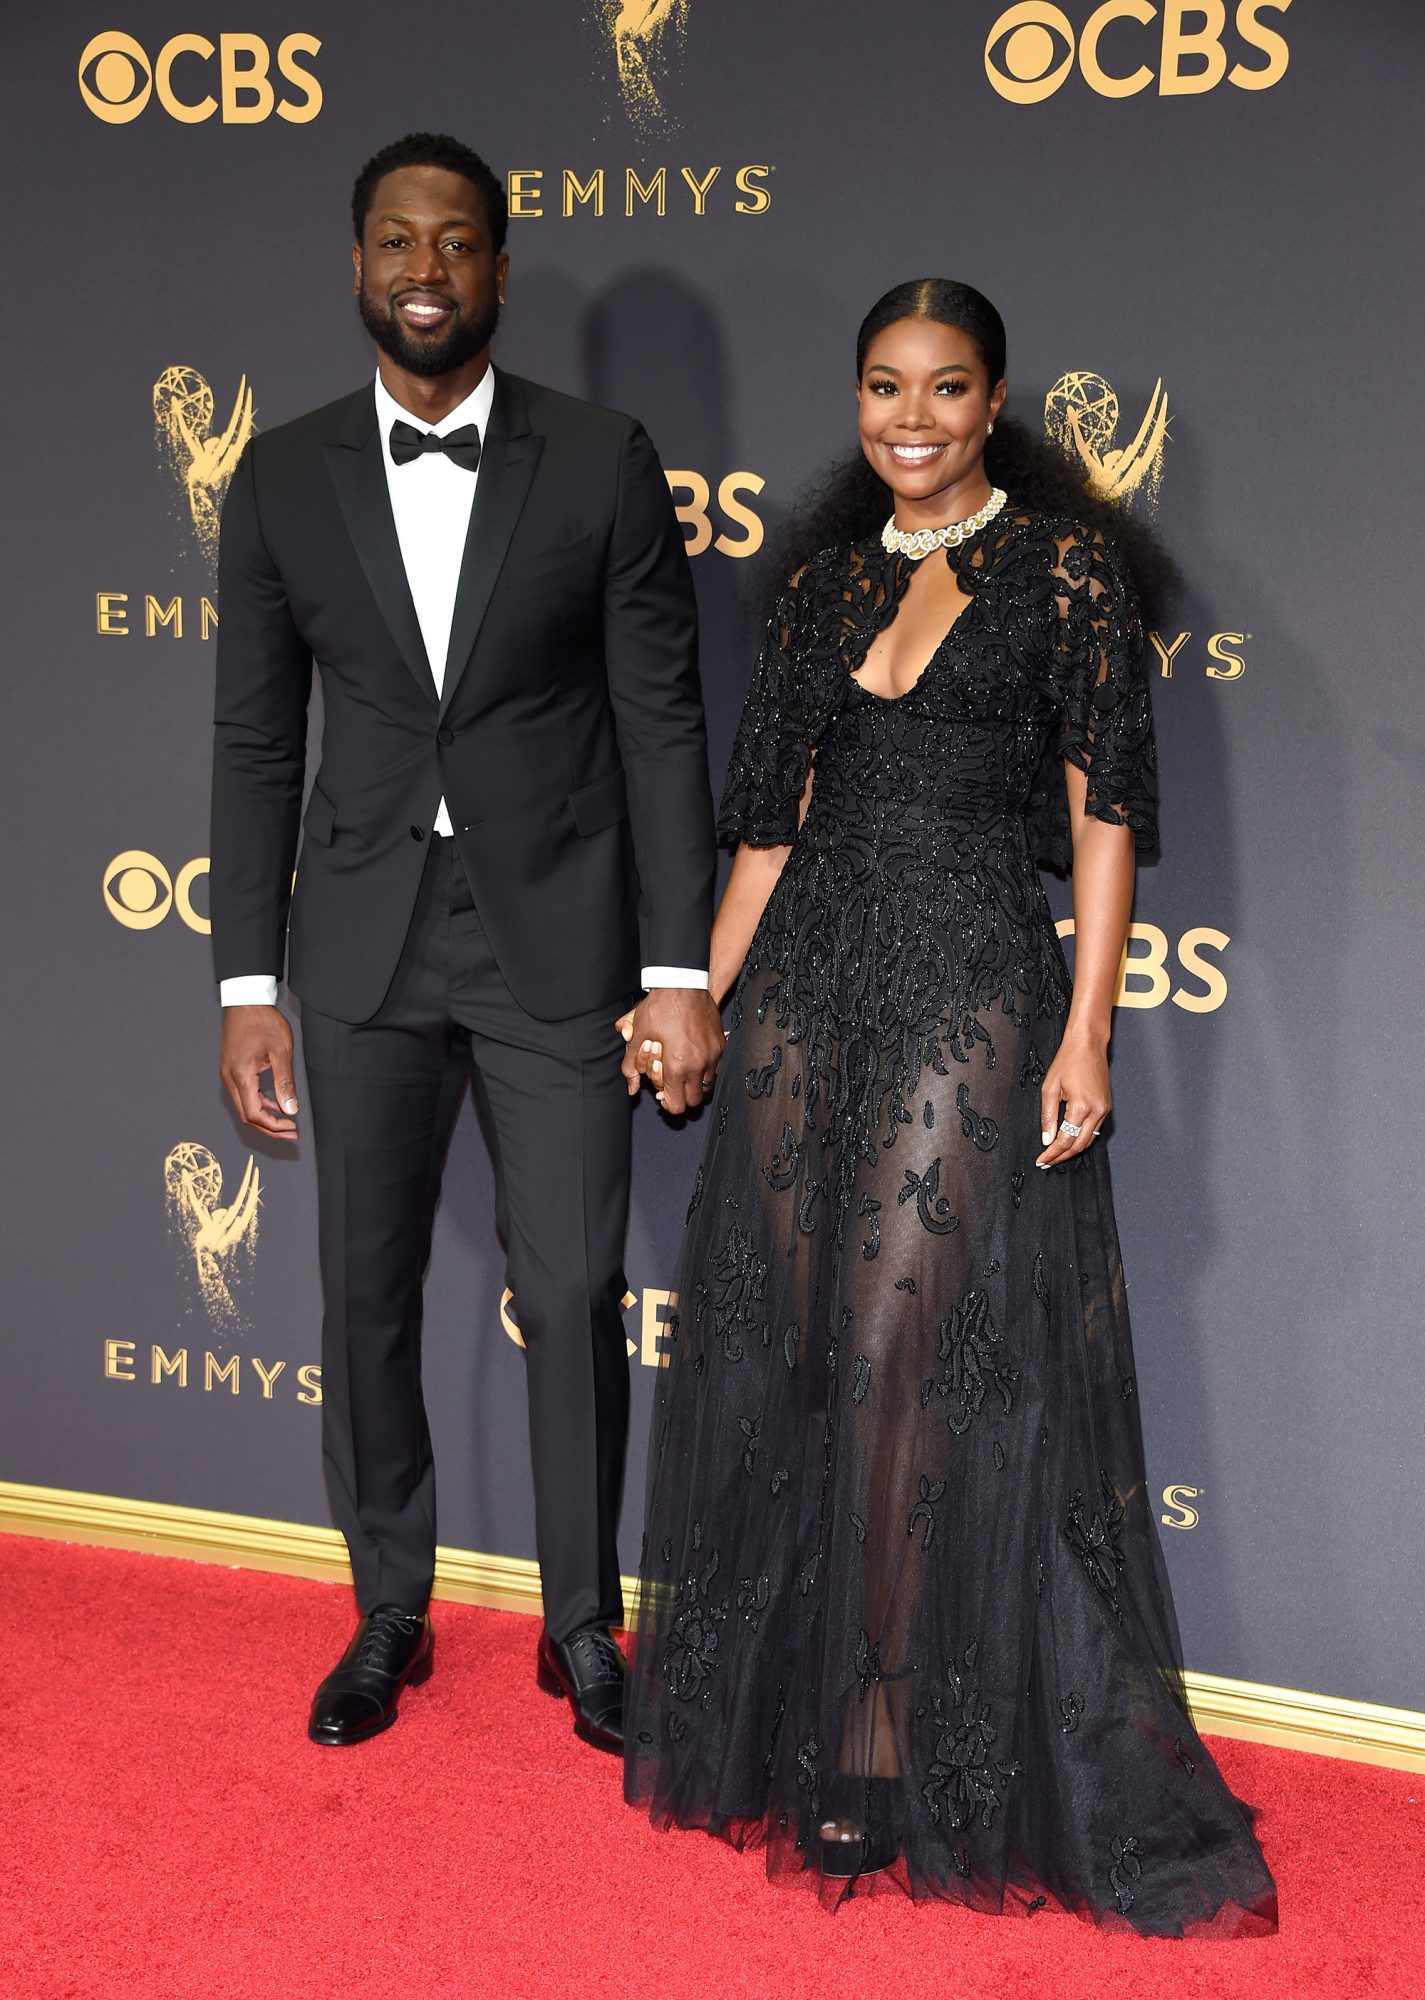 Gabrielle Union and Dwayne Wade Emmys 2017